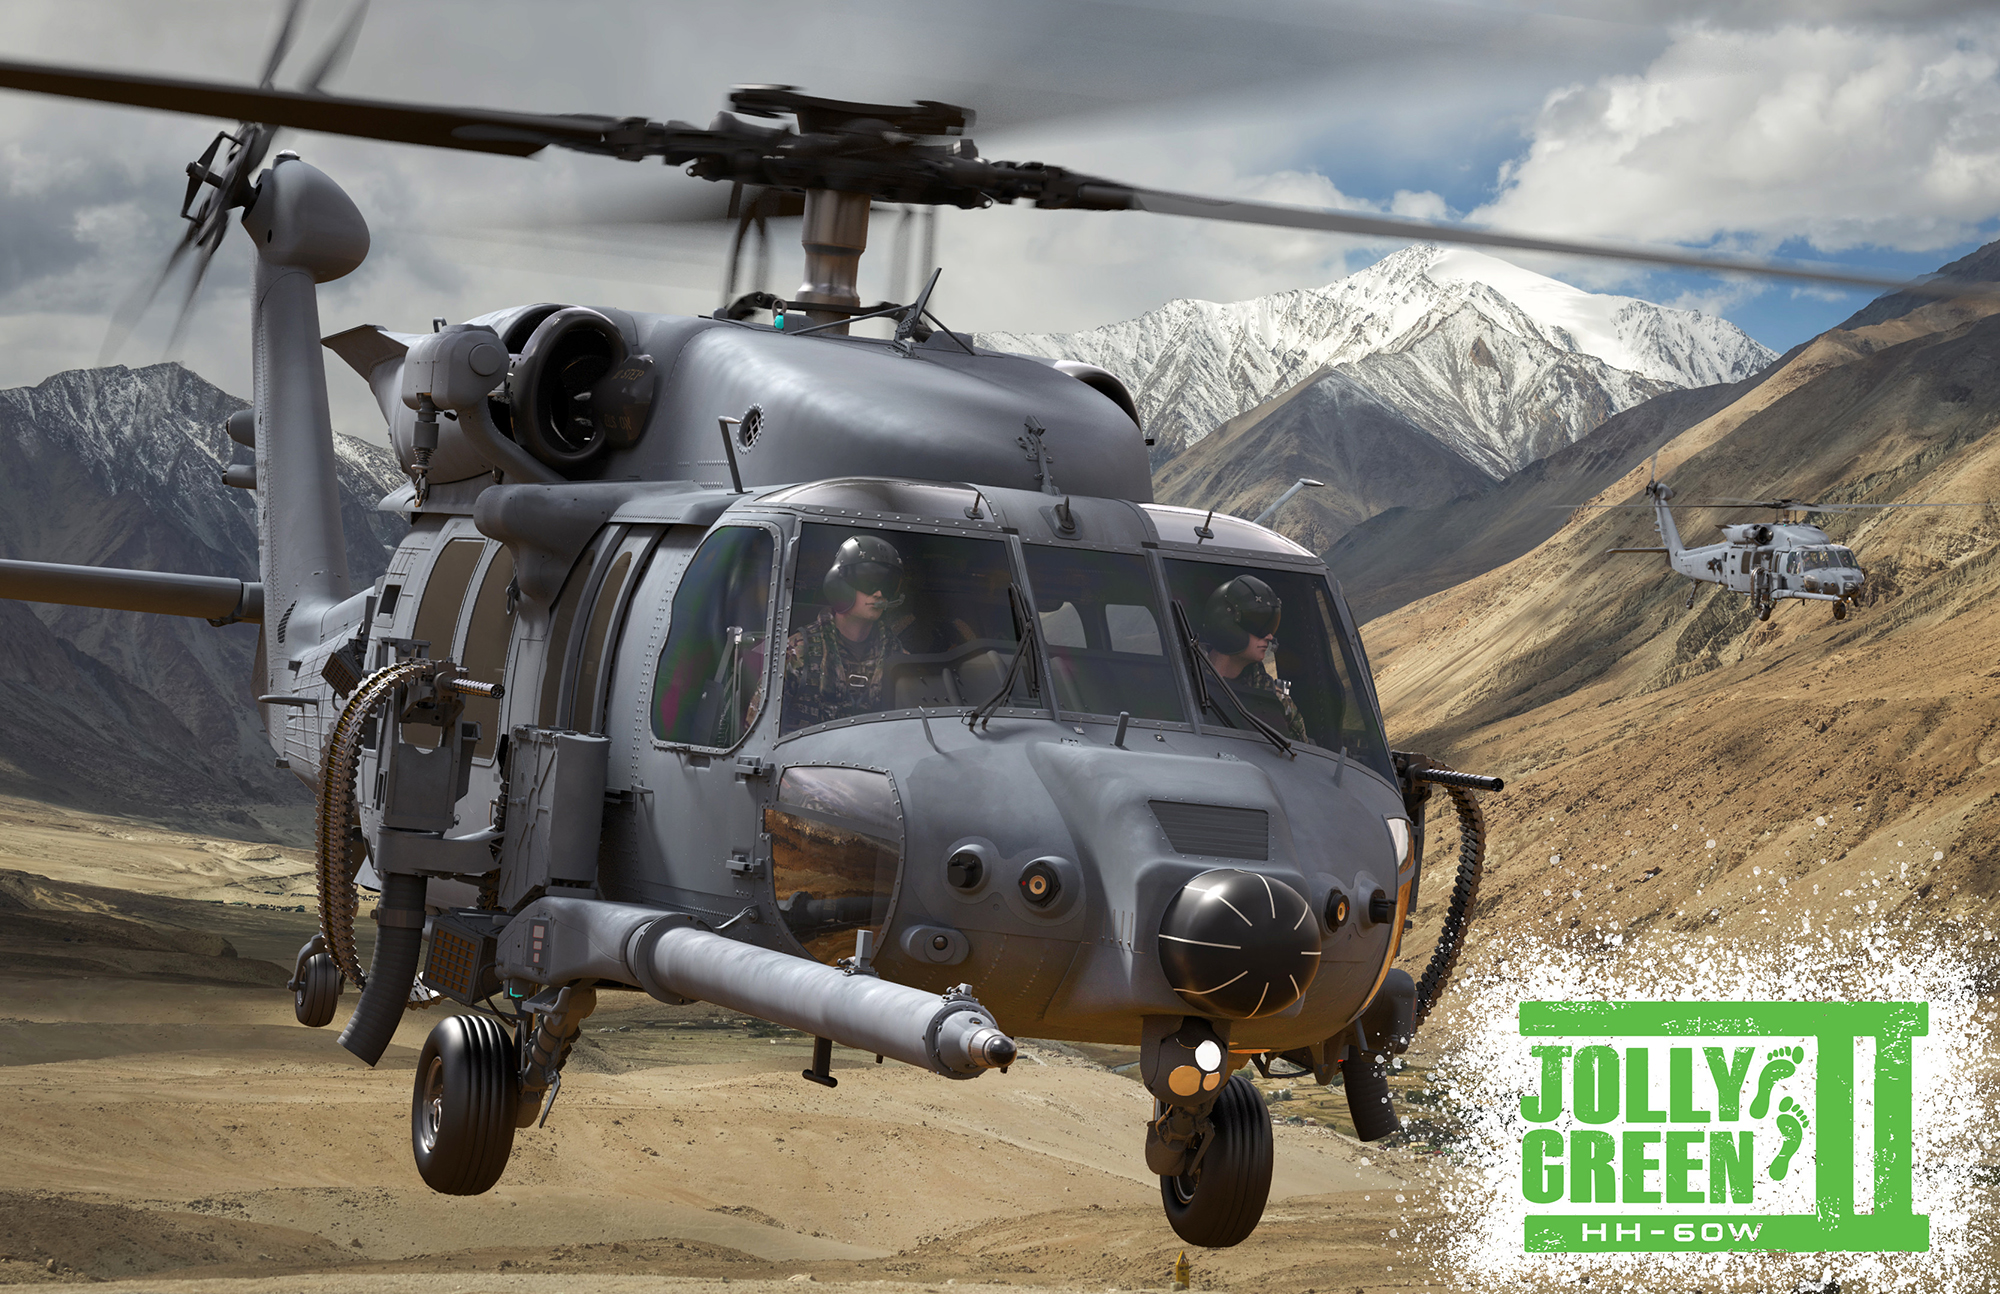 Combat Rescue Helicopter Named the 'Jolly Green II' - Air Force Magazine